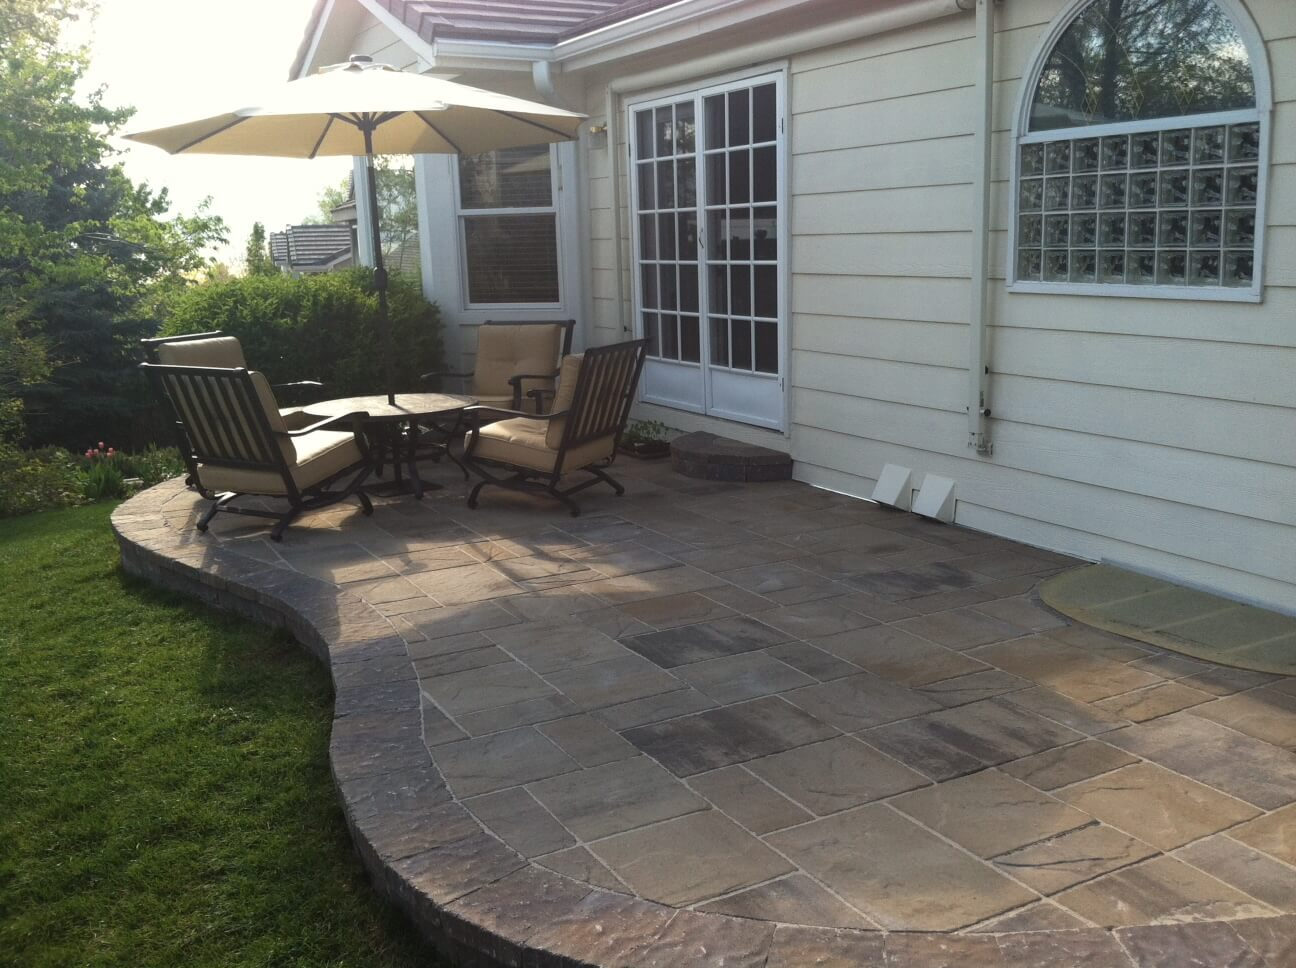 Seating area on patio